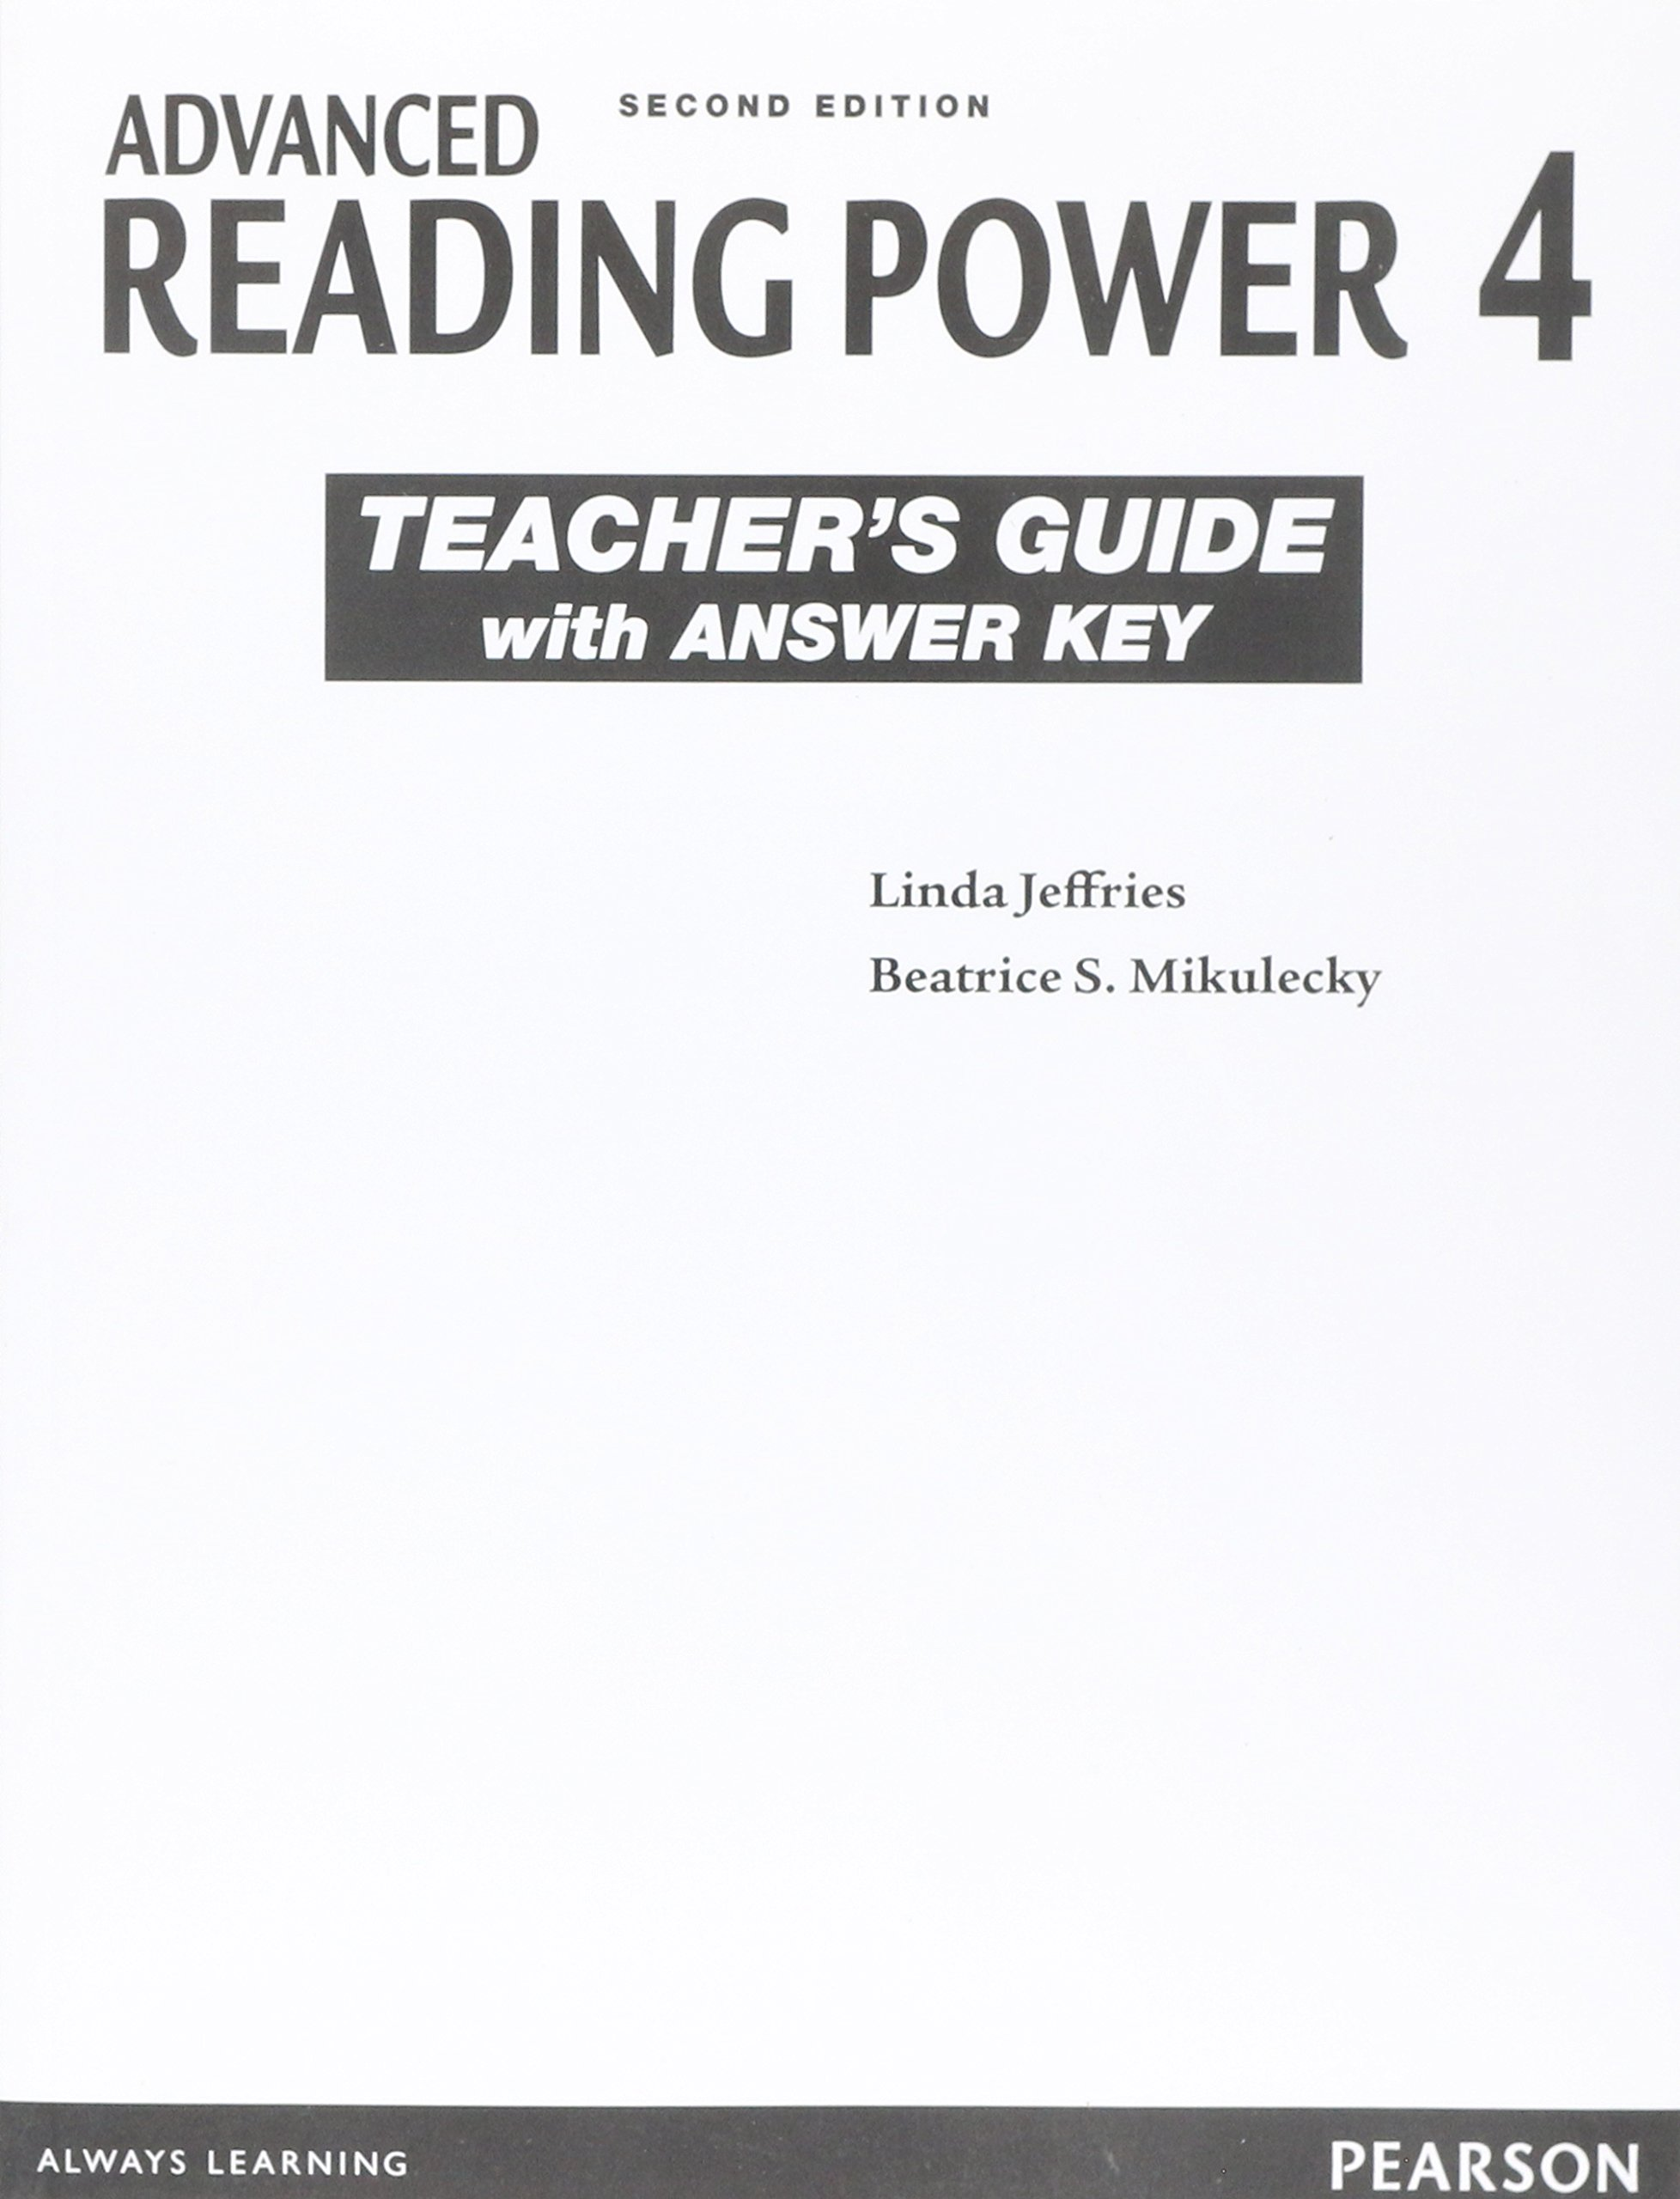 Amazon | Advanced Reading Power (2E) Teacher's Guide with Answer Key (Reading  Power Series) | Linda Jeffries Beatrice S. Mikulecky | Education & Reference